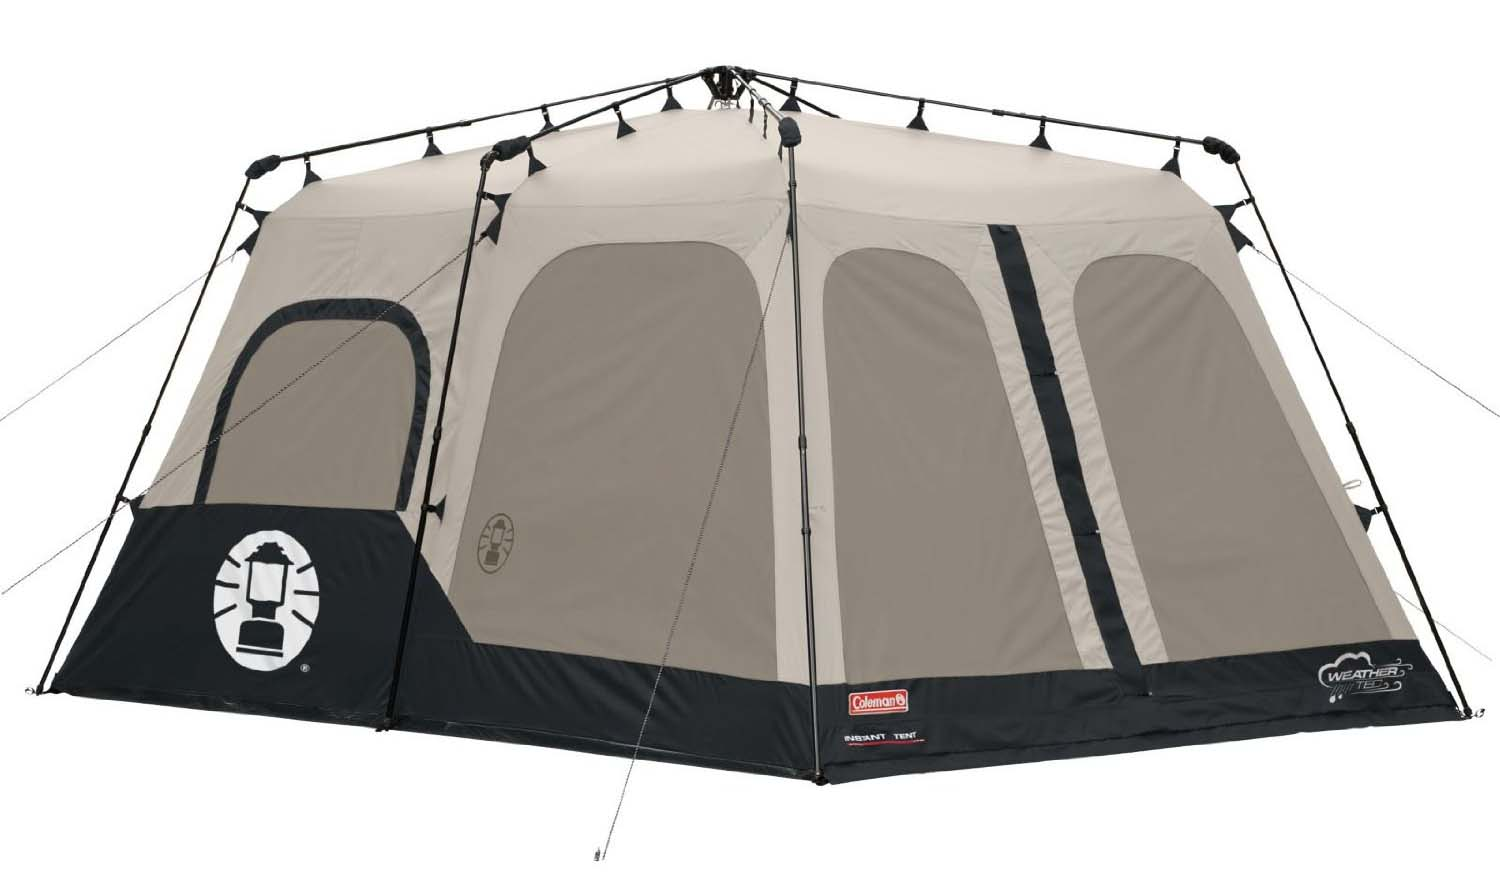 Coleman 8-person Instant Tent vs Ozark Trail 10-Person XL Family Cabin Tent detailed comparison as of 2018 - Slant  sc 1 st  Slant & Coleman 8-person Instant Tent vs Ozark Trail 10-Person XL Family ...